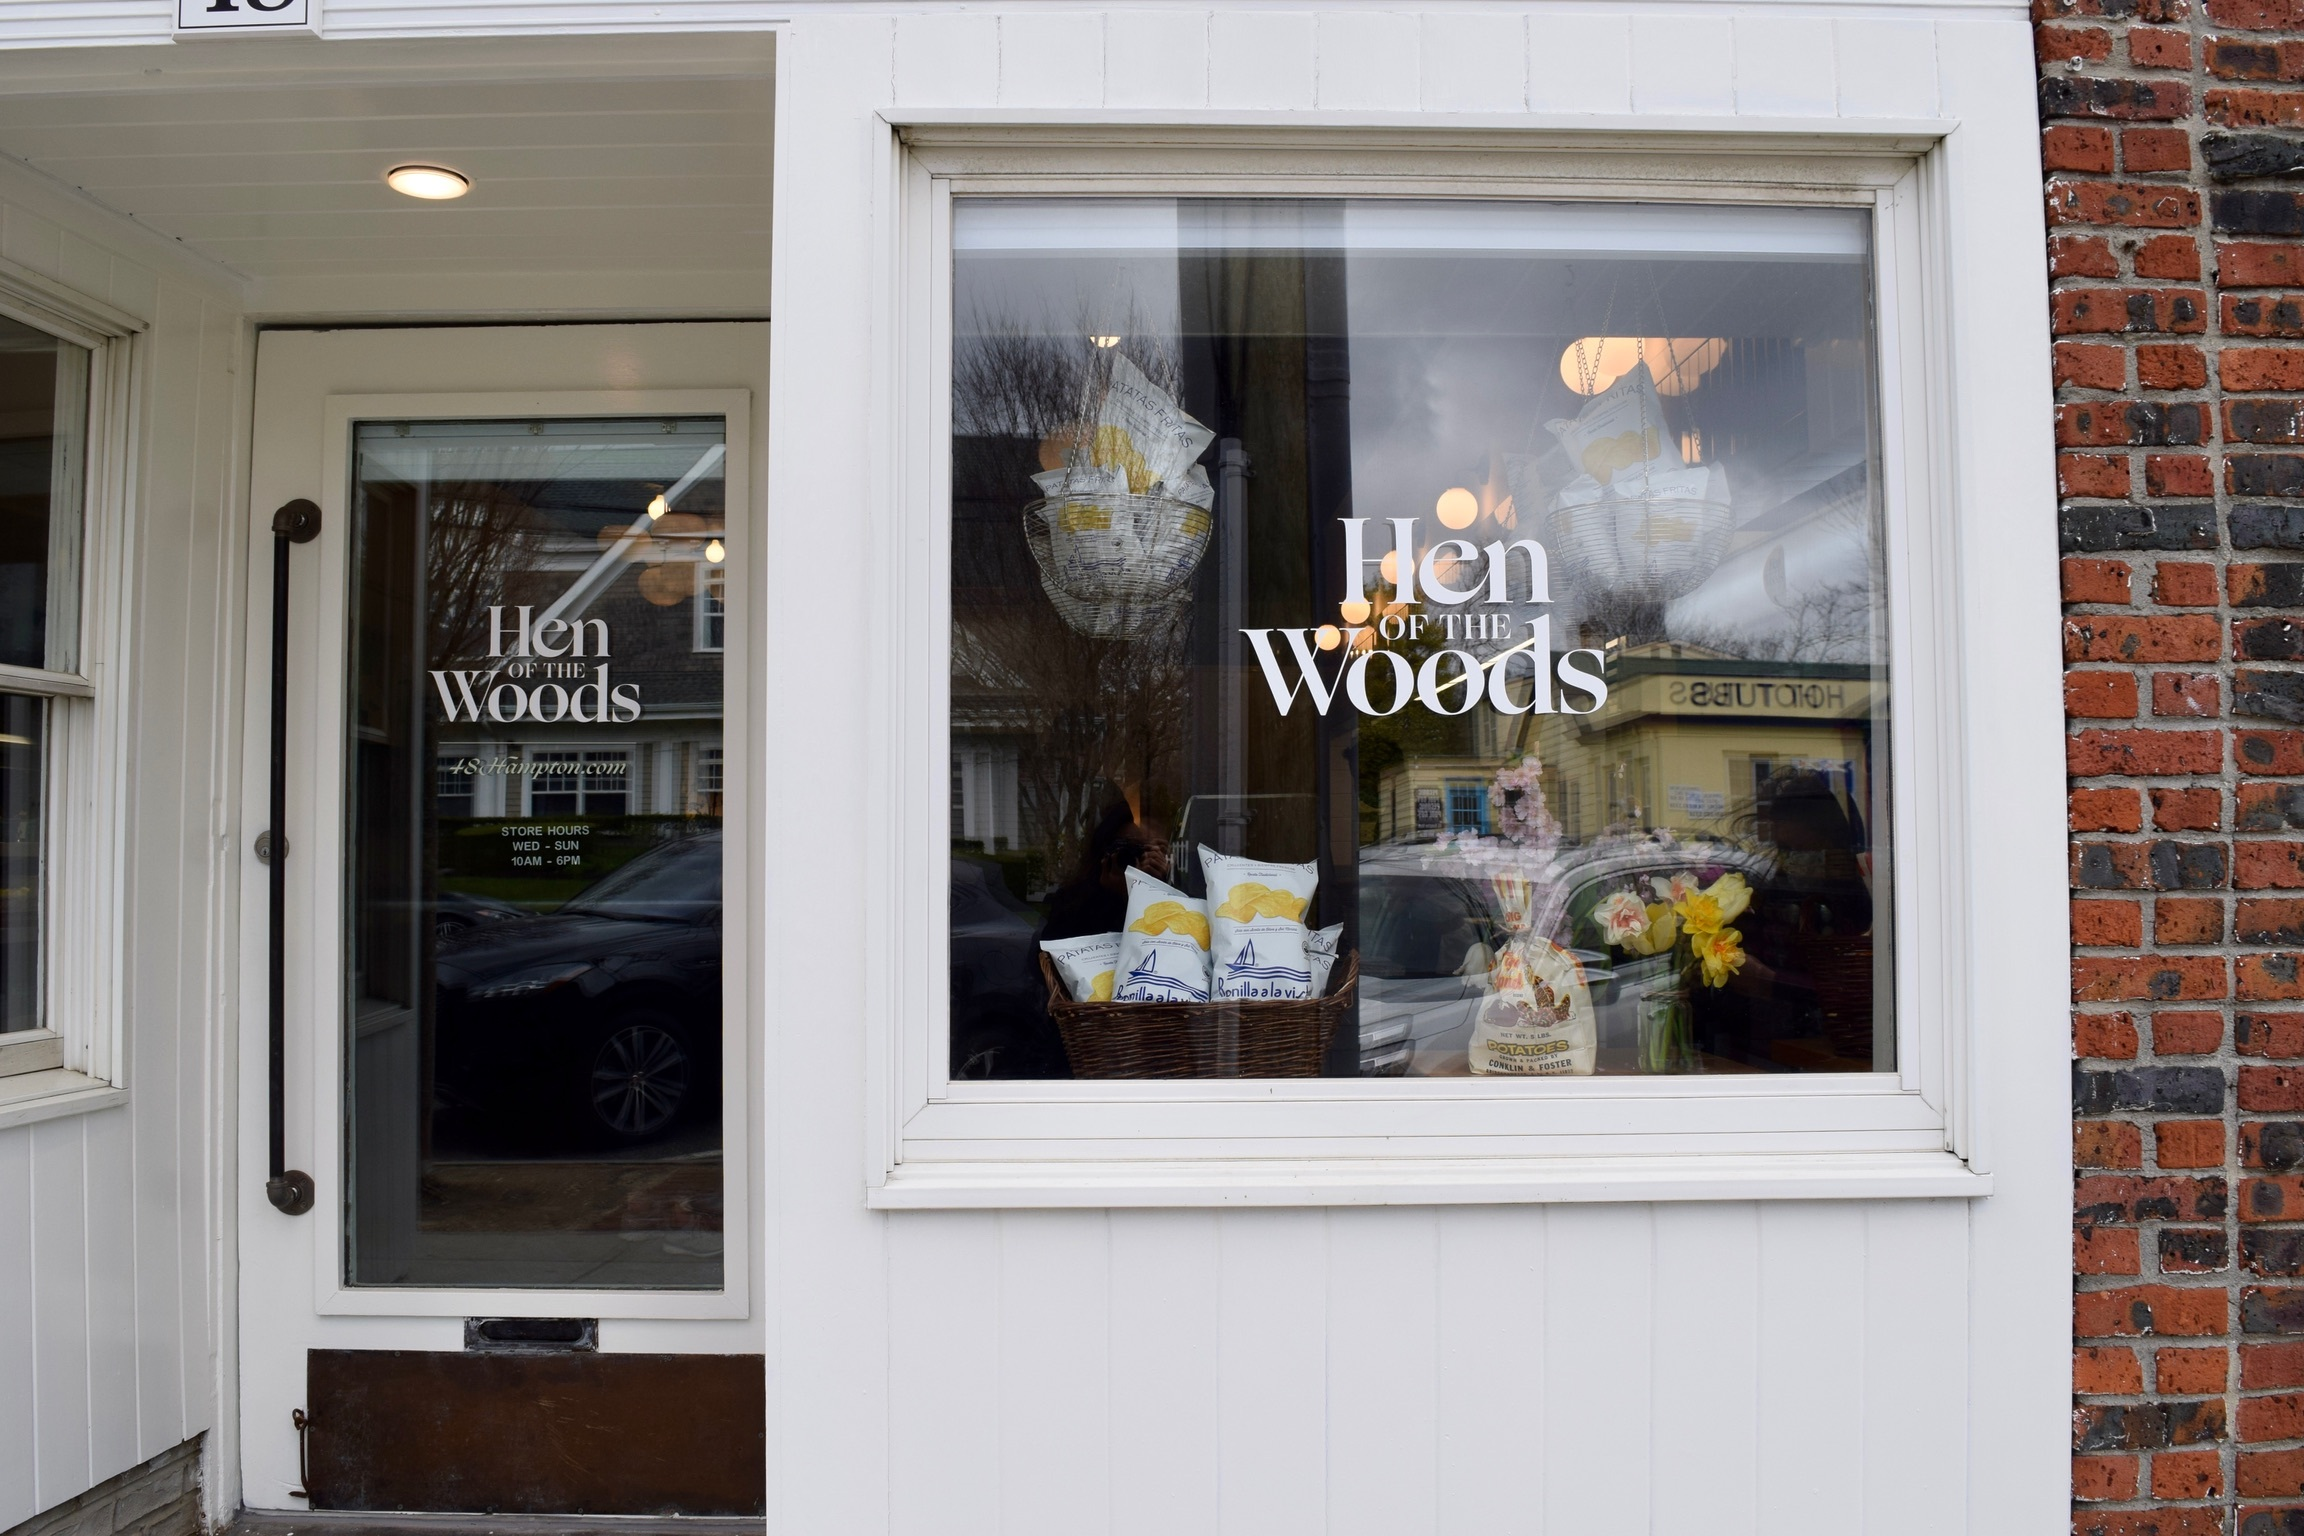 Hen of the Woods market opens this week in Southampton.